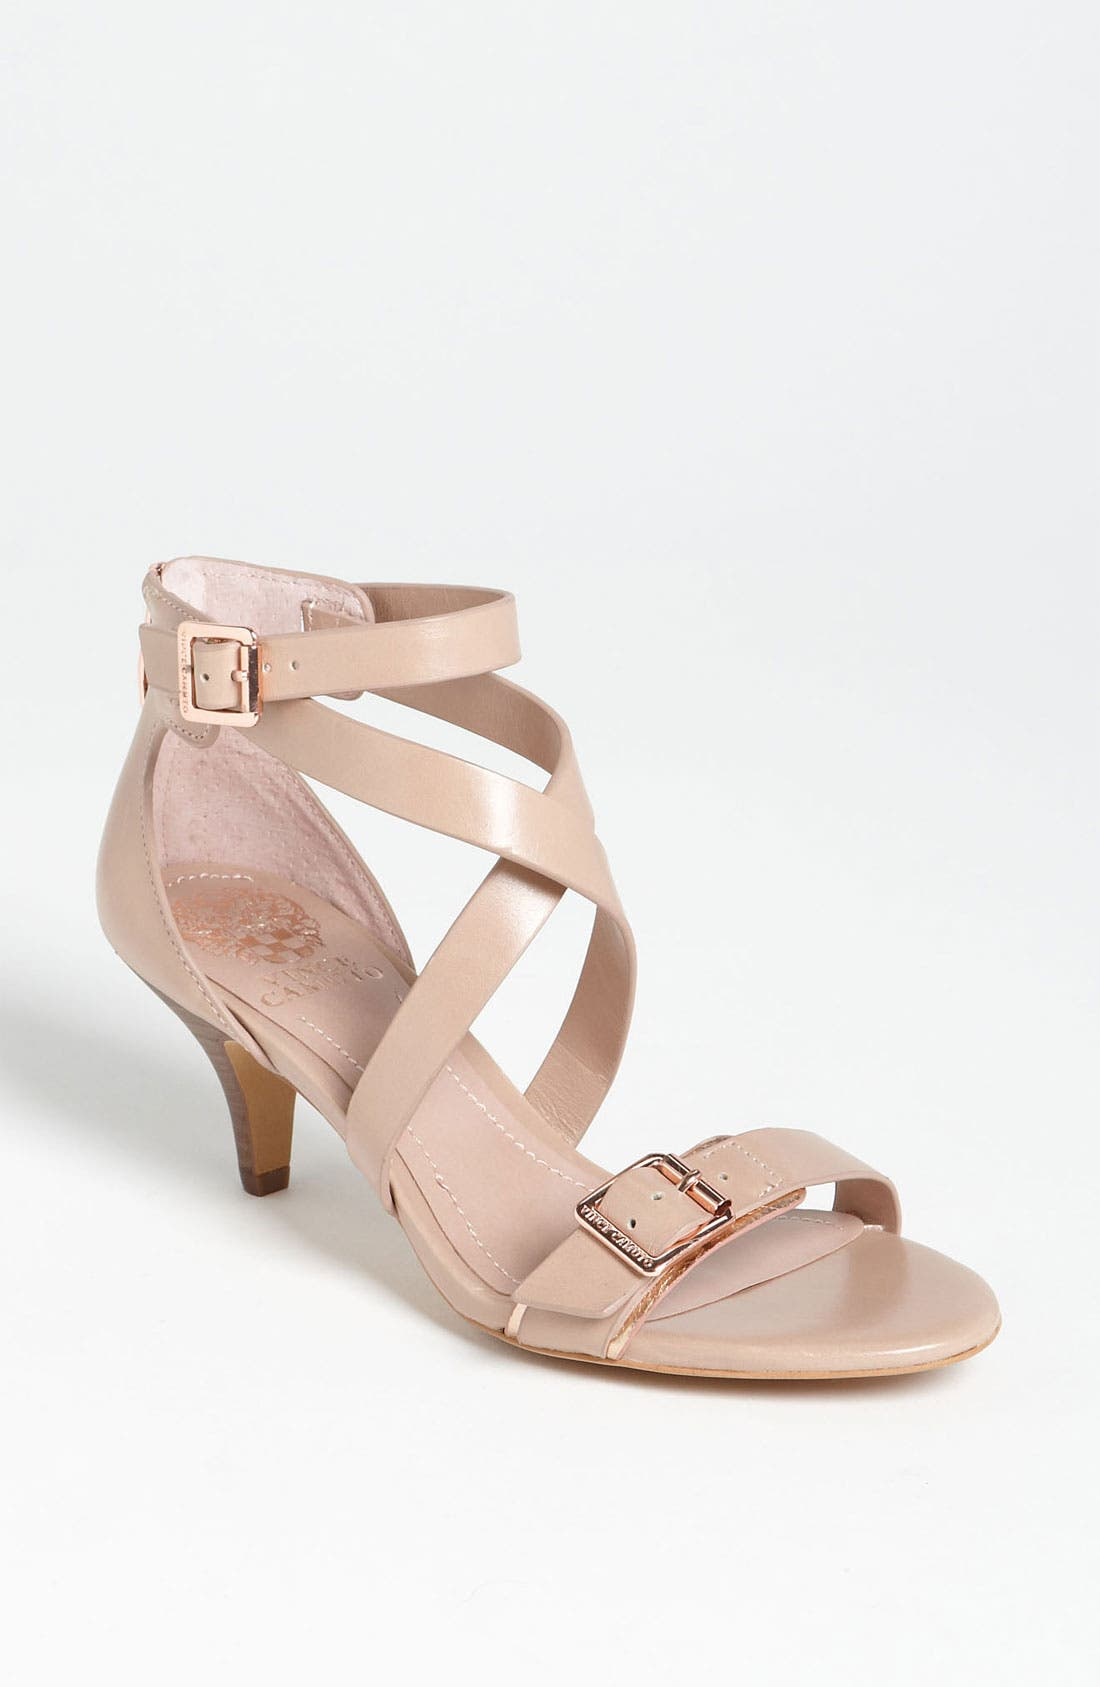 Alternate Image 1 Selected - Vince Camuto 'Tessem' Sandal